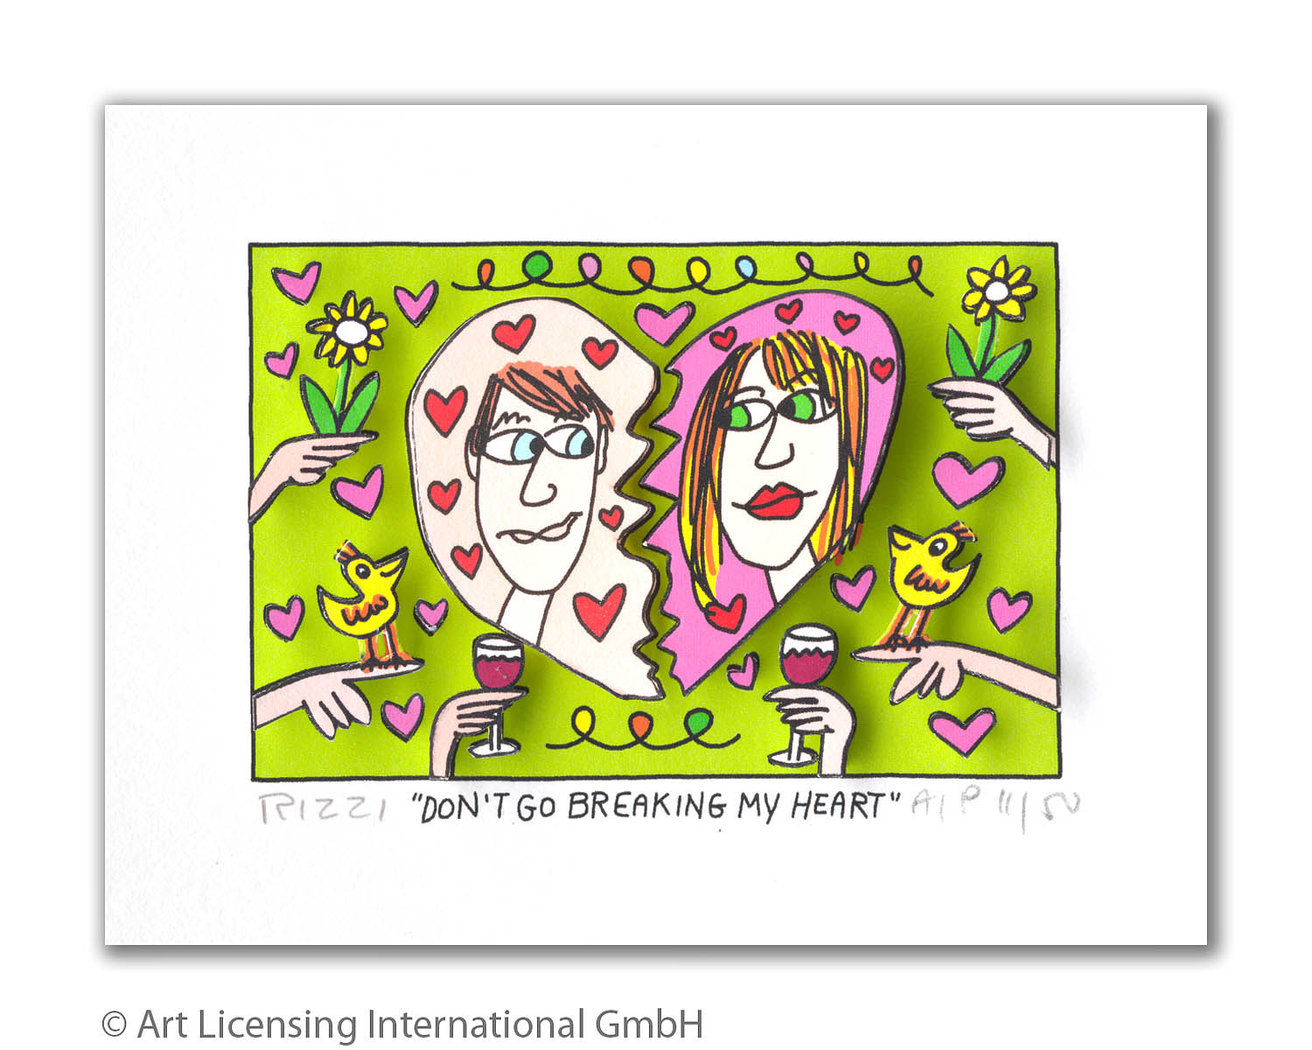 James Rizzi - DON'T GO BREAKING MY HEART